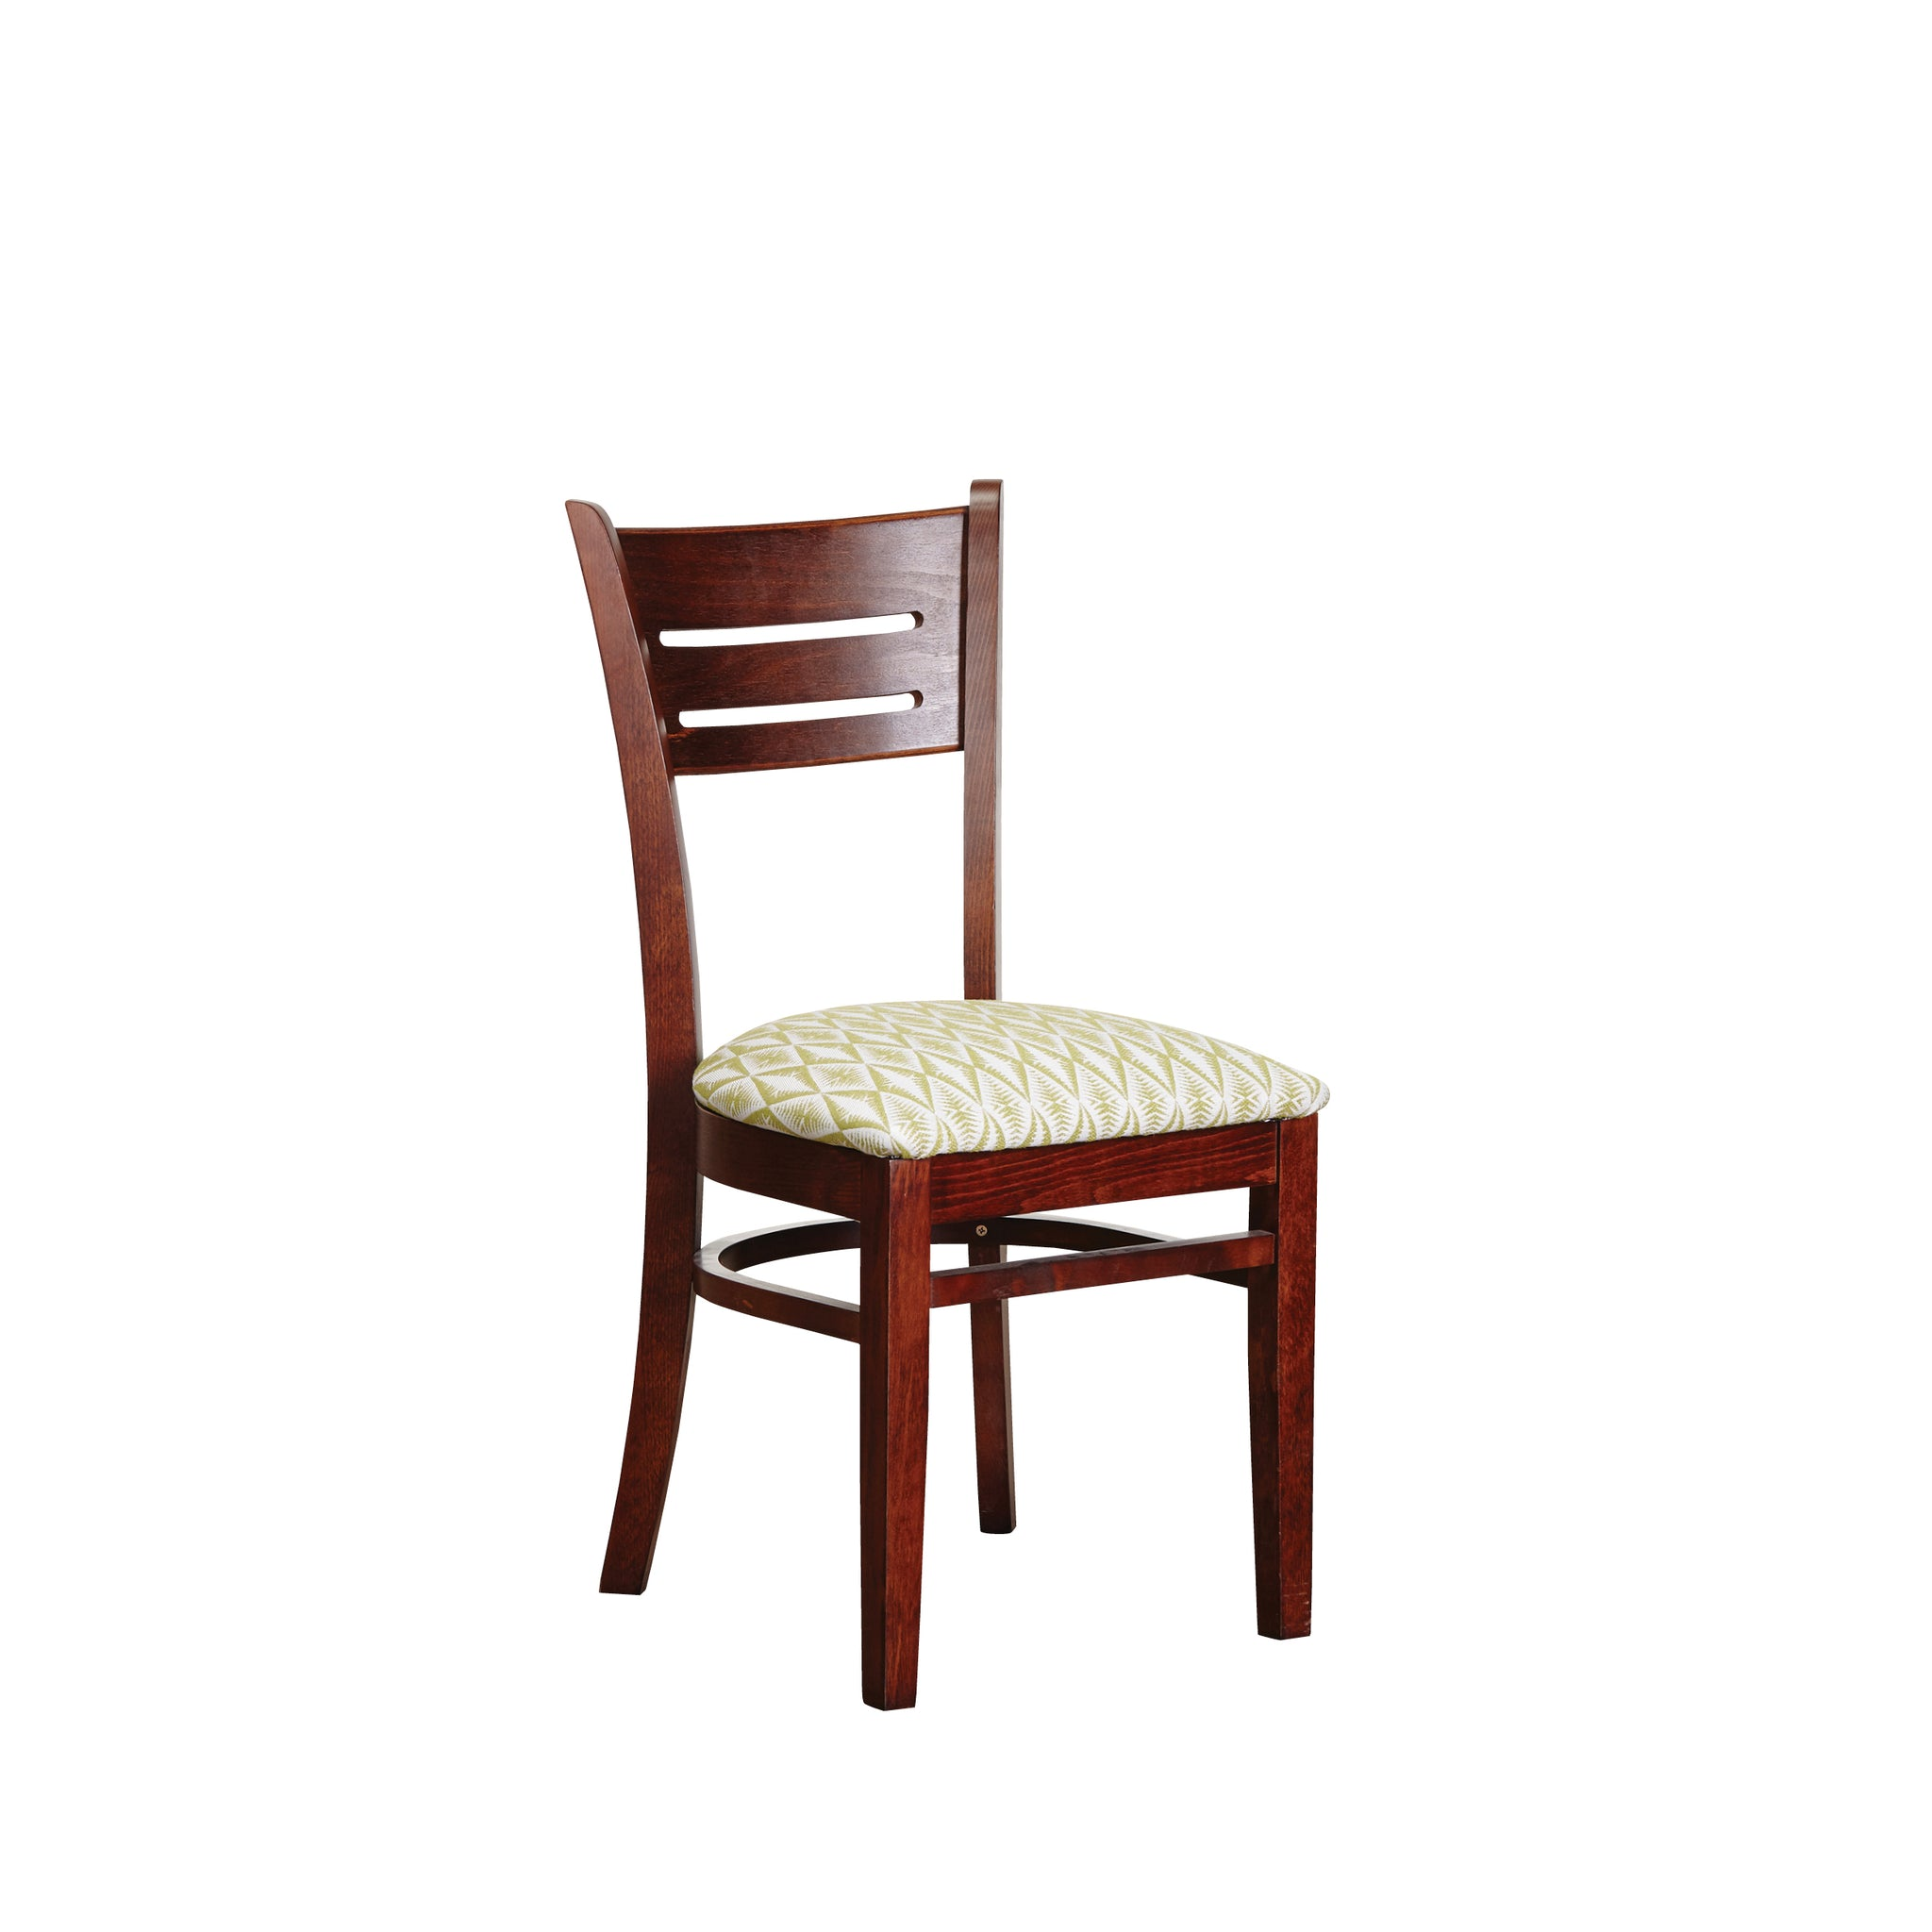 Hedcor 0072 restaurant chair